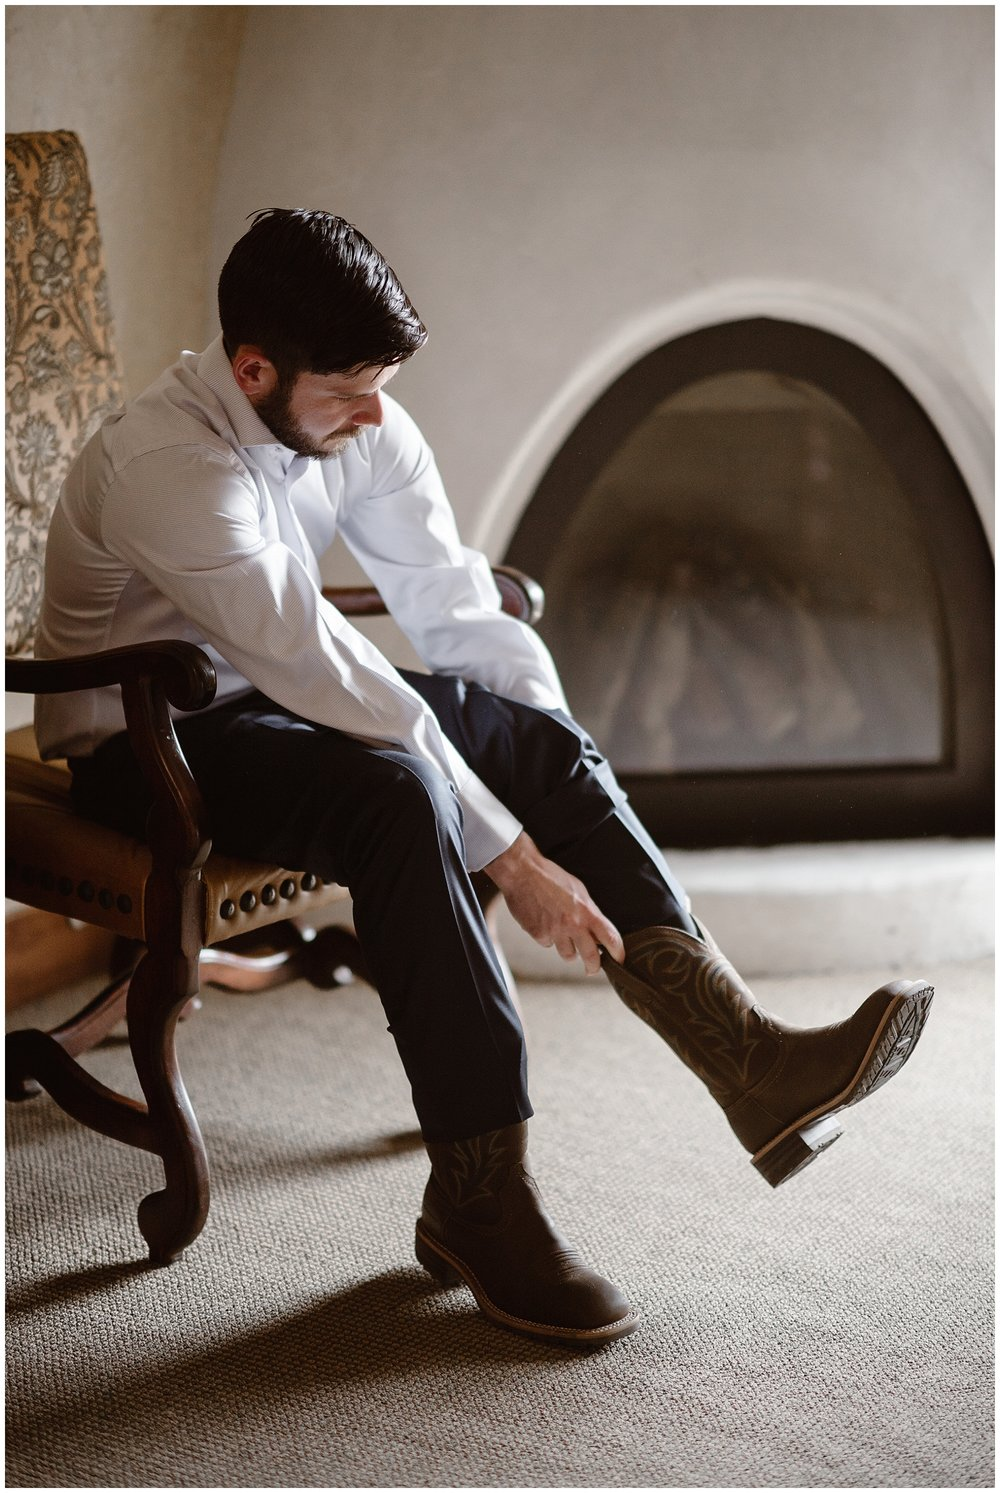 Austin chose to wear cowboy boots for his winter elopement ceremony at Sapphire Point in Dillon, Colorado.Photo by Adventure Instead, Maddie Mae Elopement Photographers.